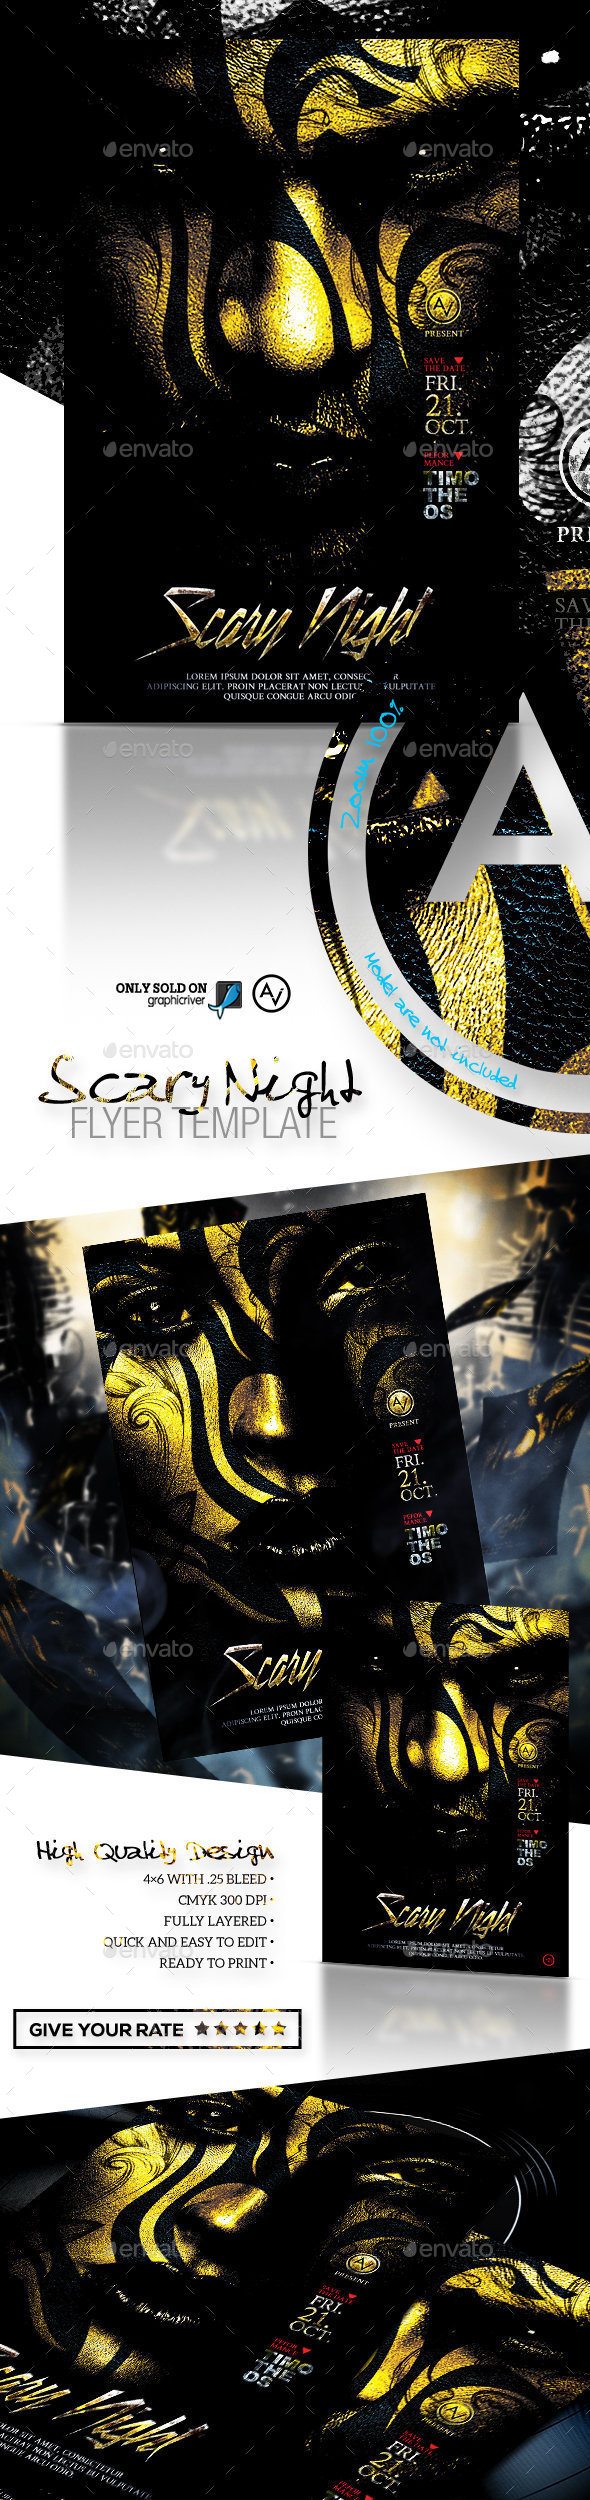 Scary Template Stationery and Design Templates